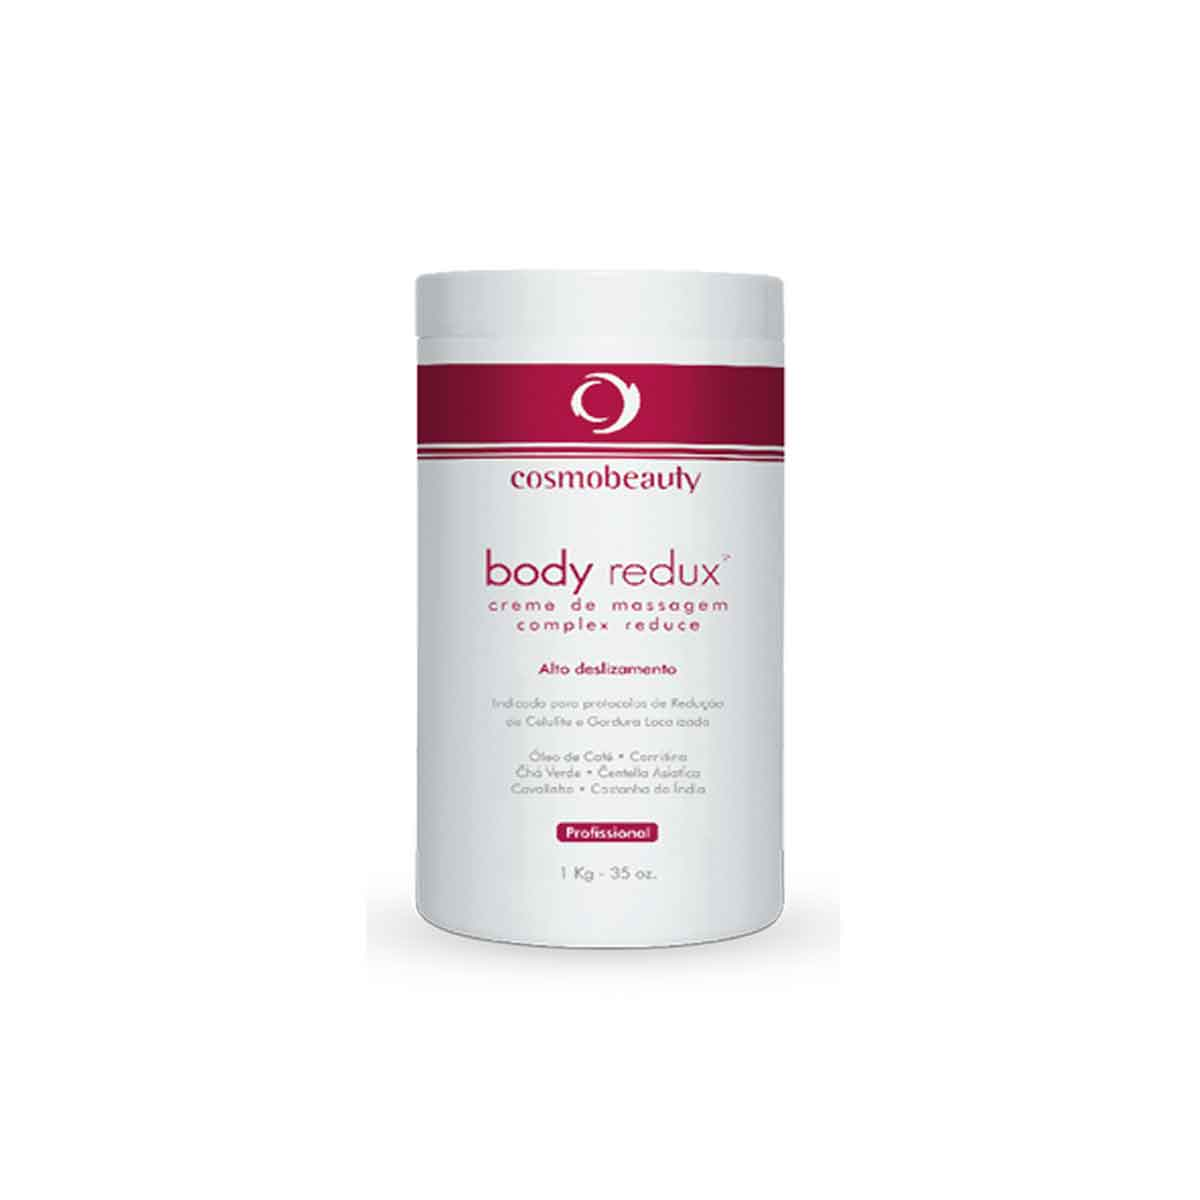 Creme de Massagem Body Redux Complex Reduce - 1kg